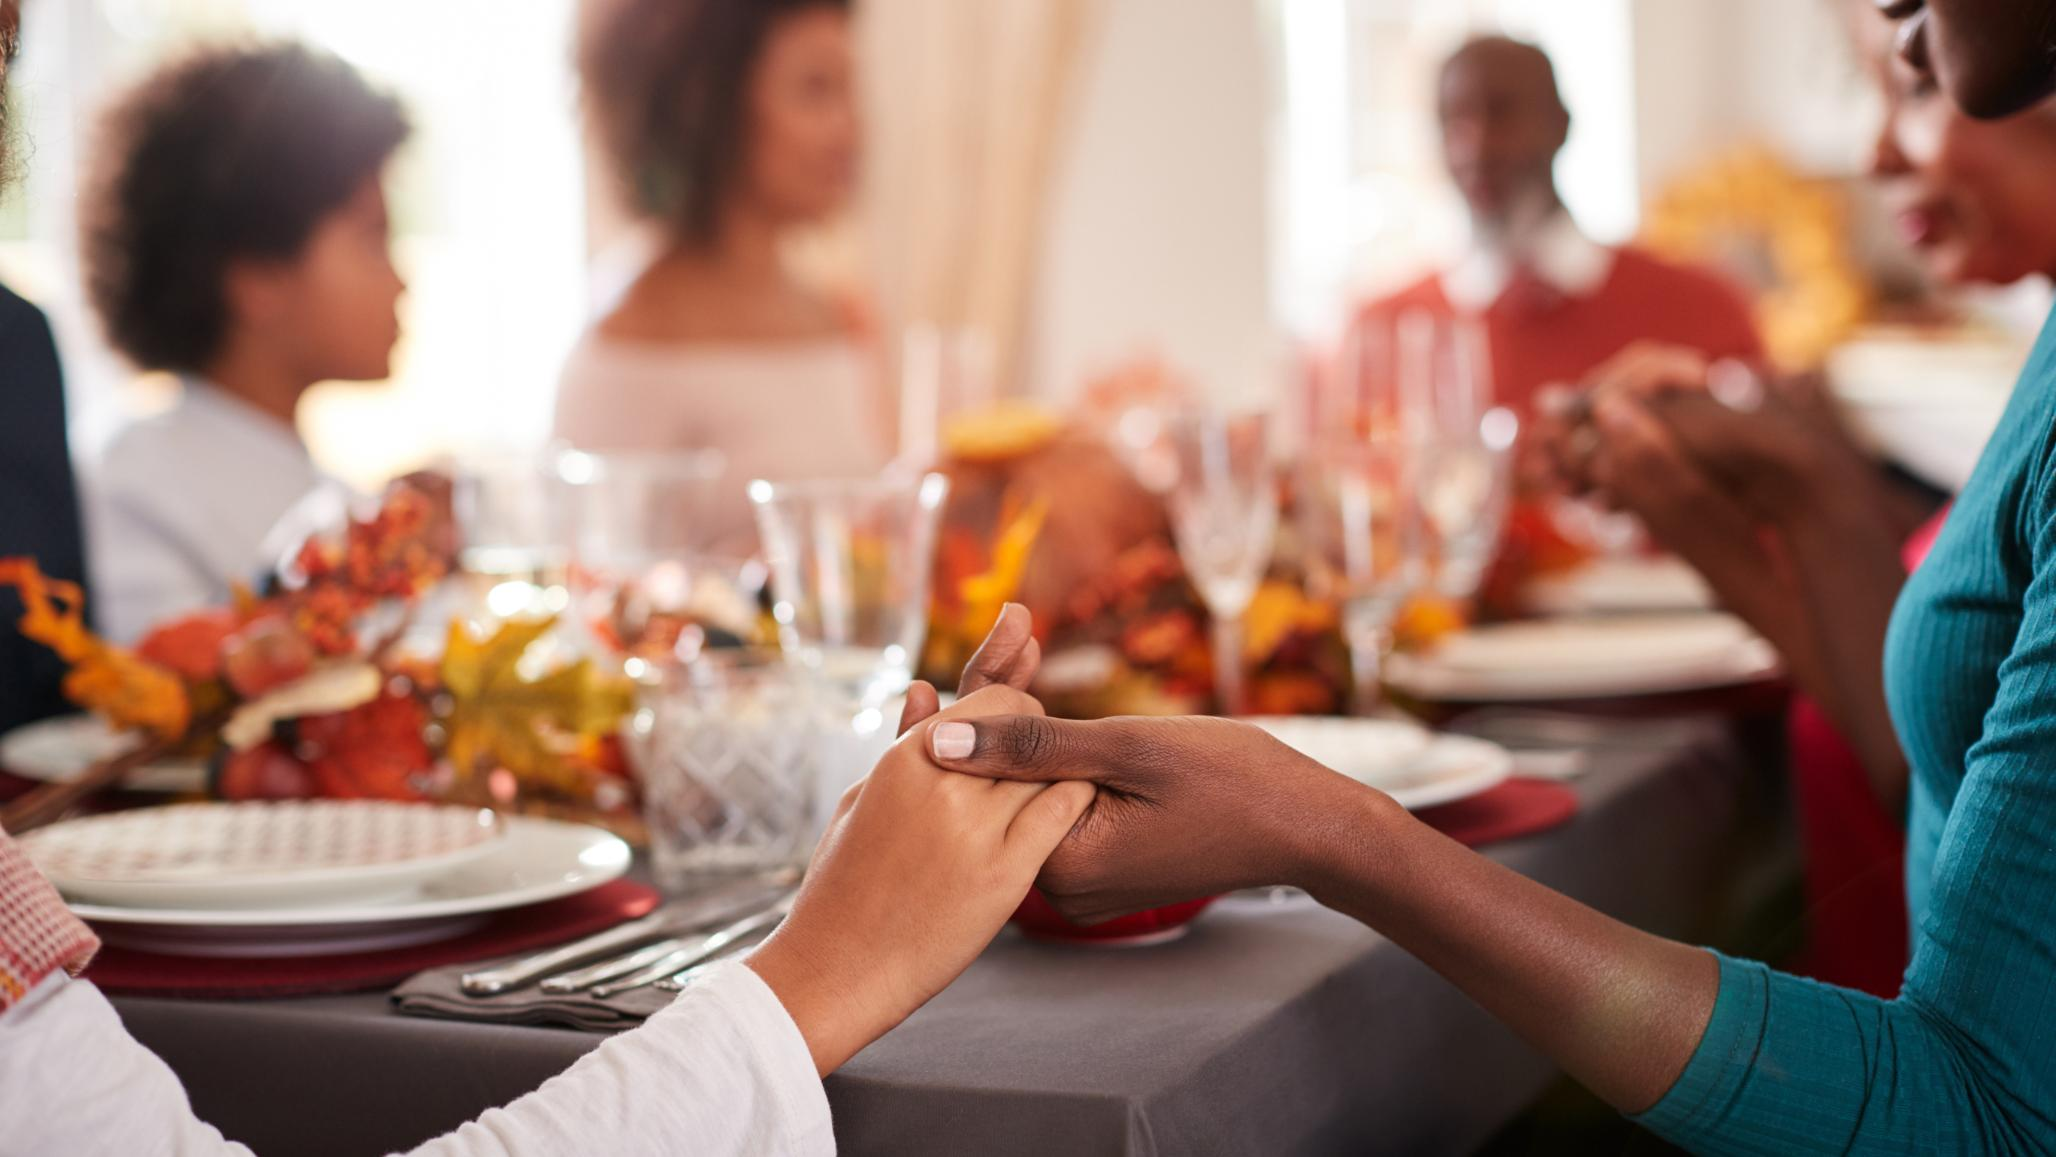 CDC Thanksgiving guidelines: How to stay safe and coronavirus-free over the holiday